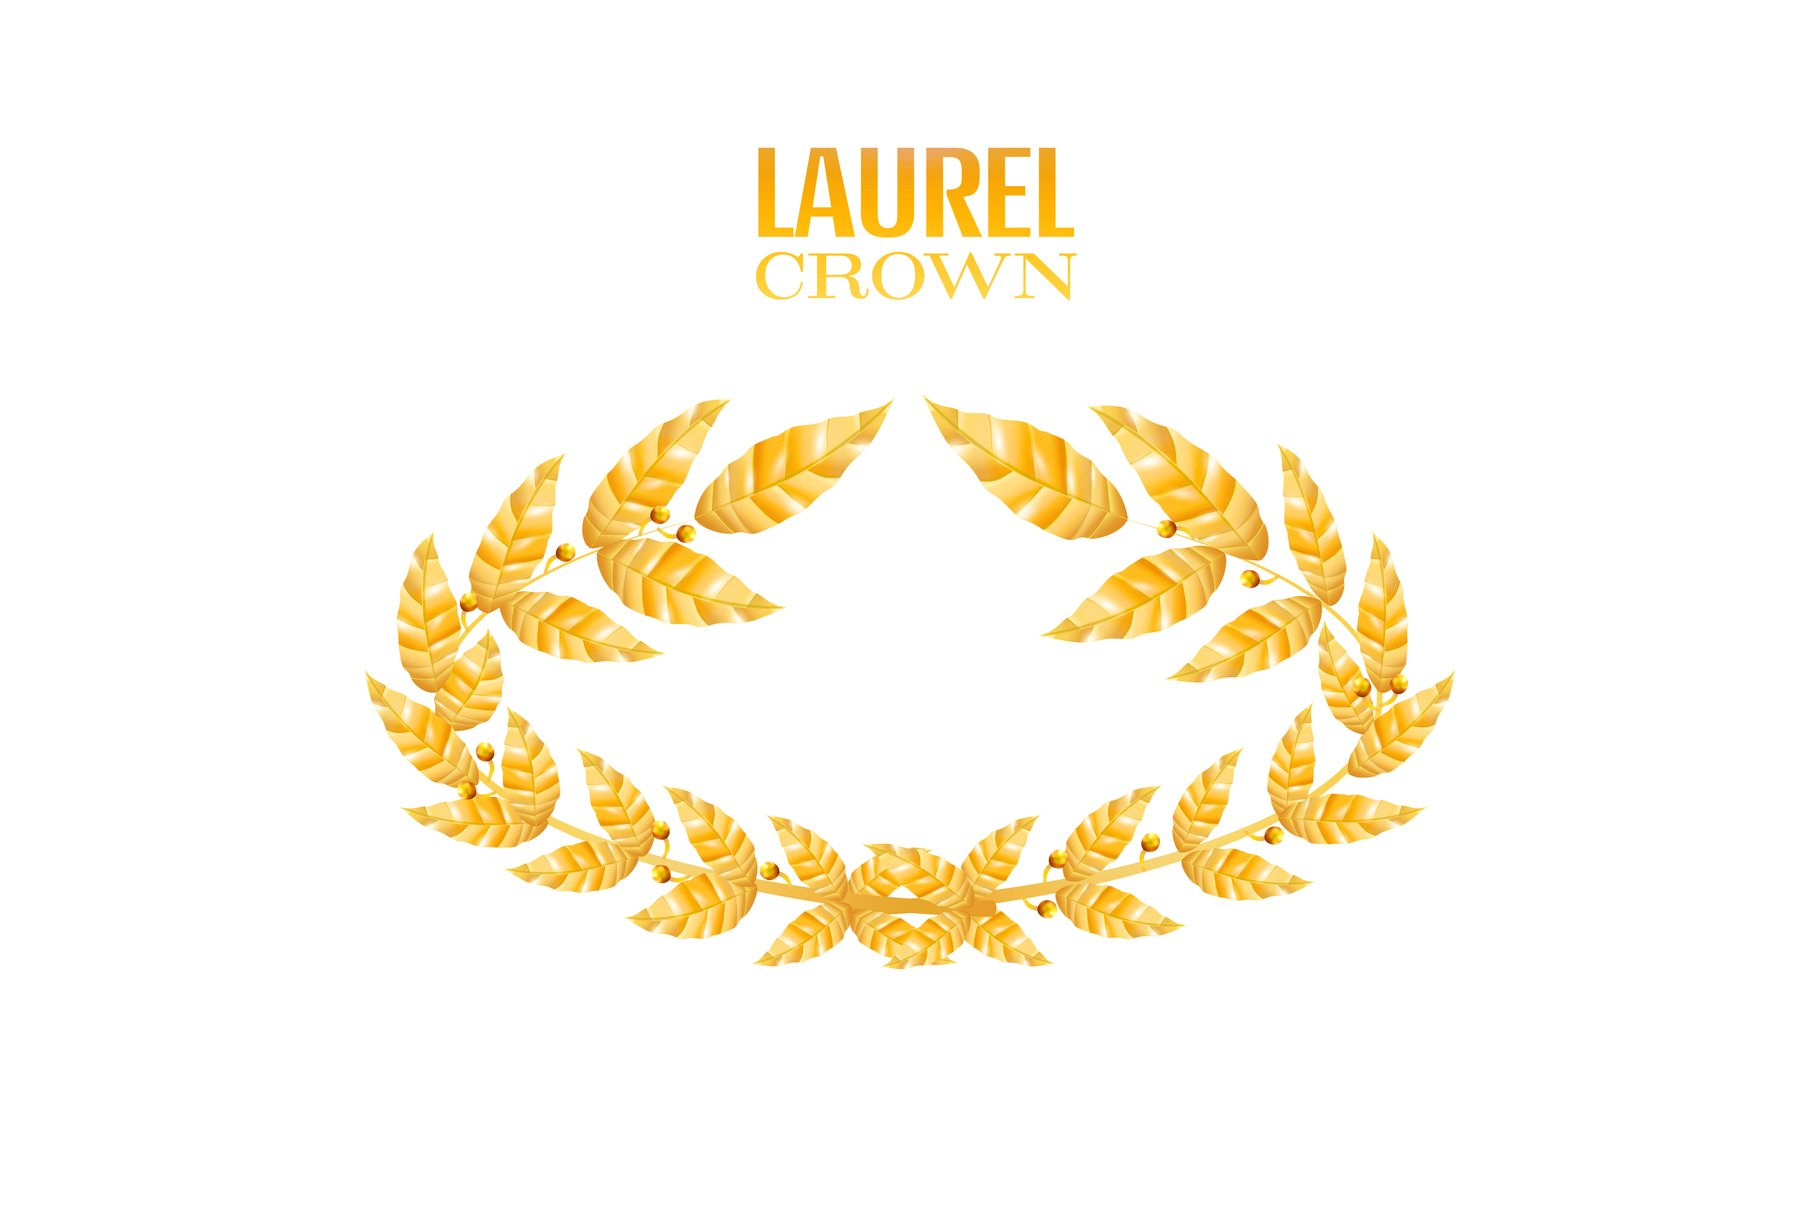 Laurel Crown. Greek Wreath With Golden Leaves. Vector example image 1